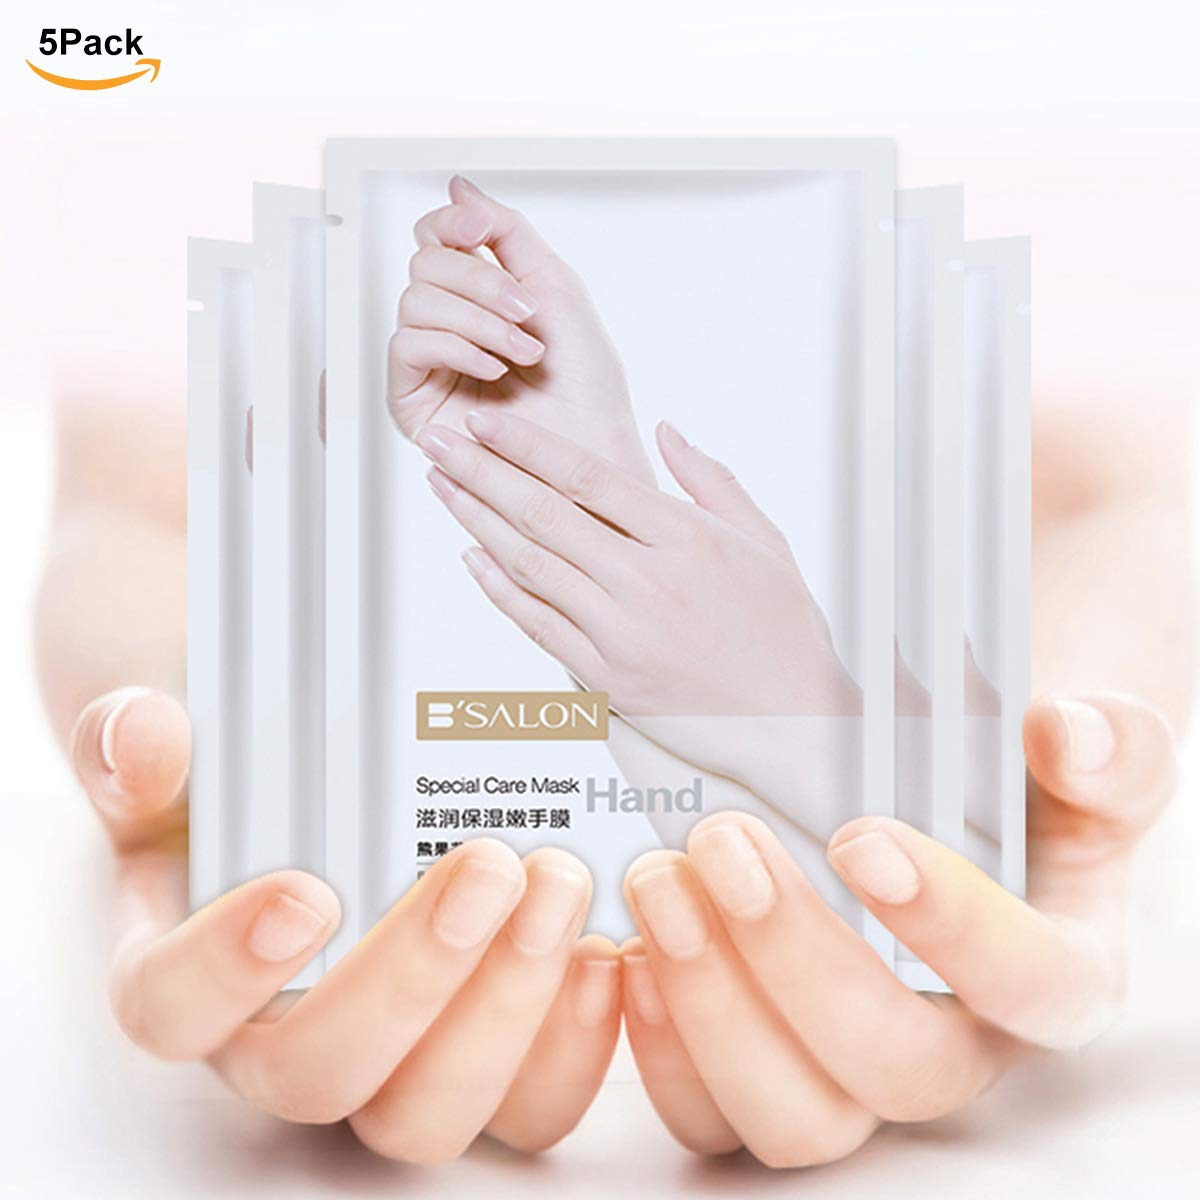 Bariicare Hand Peel Mask Moisturizing Gloves Spa For Dry Skin Hands Care Winter Nourishing Enhancing Soothing Whitening Retain Hydration Exfoliator Off hand peeling mask for mens women Ladies 5Pack